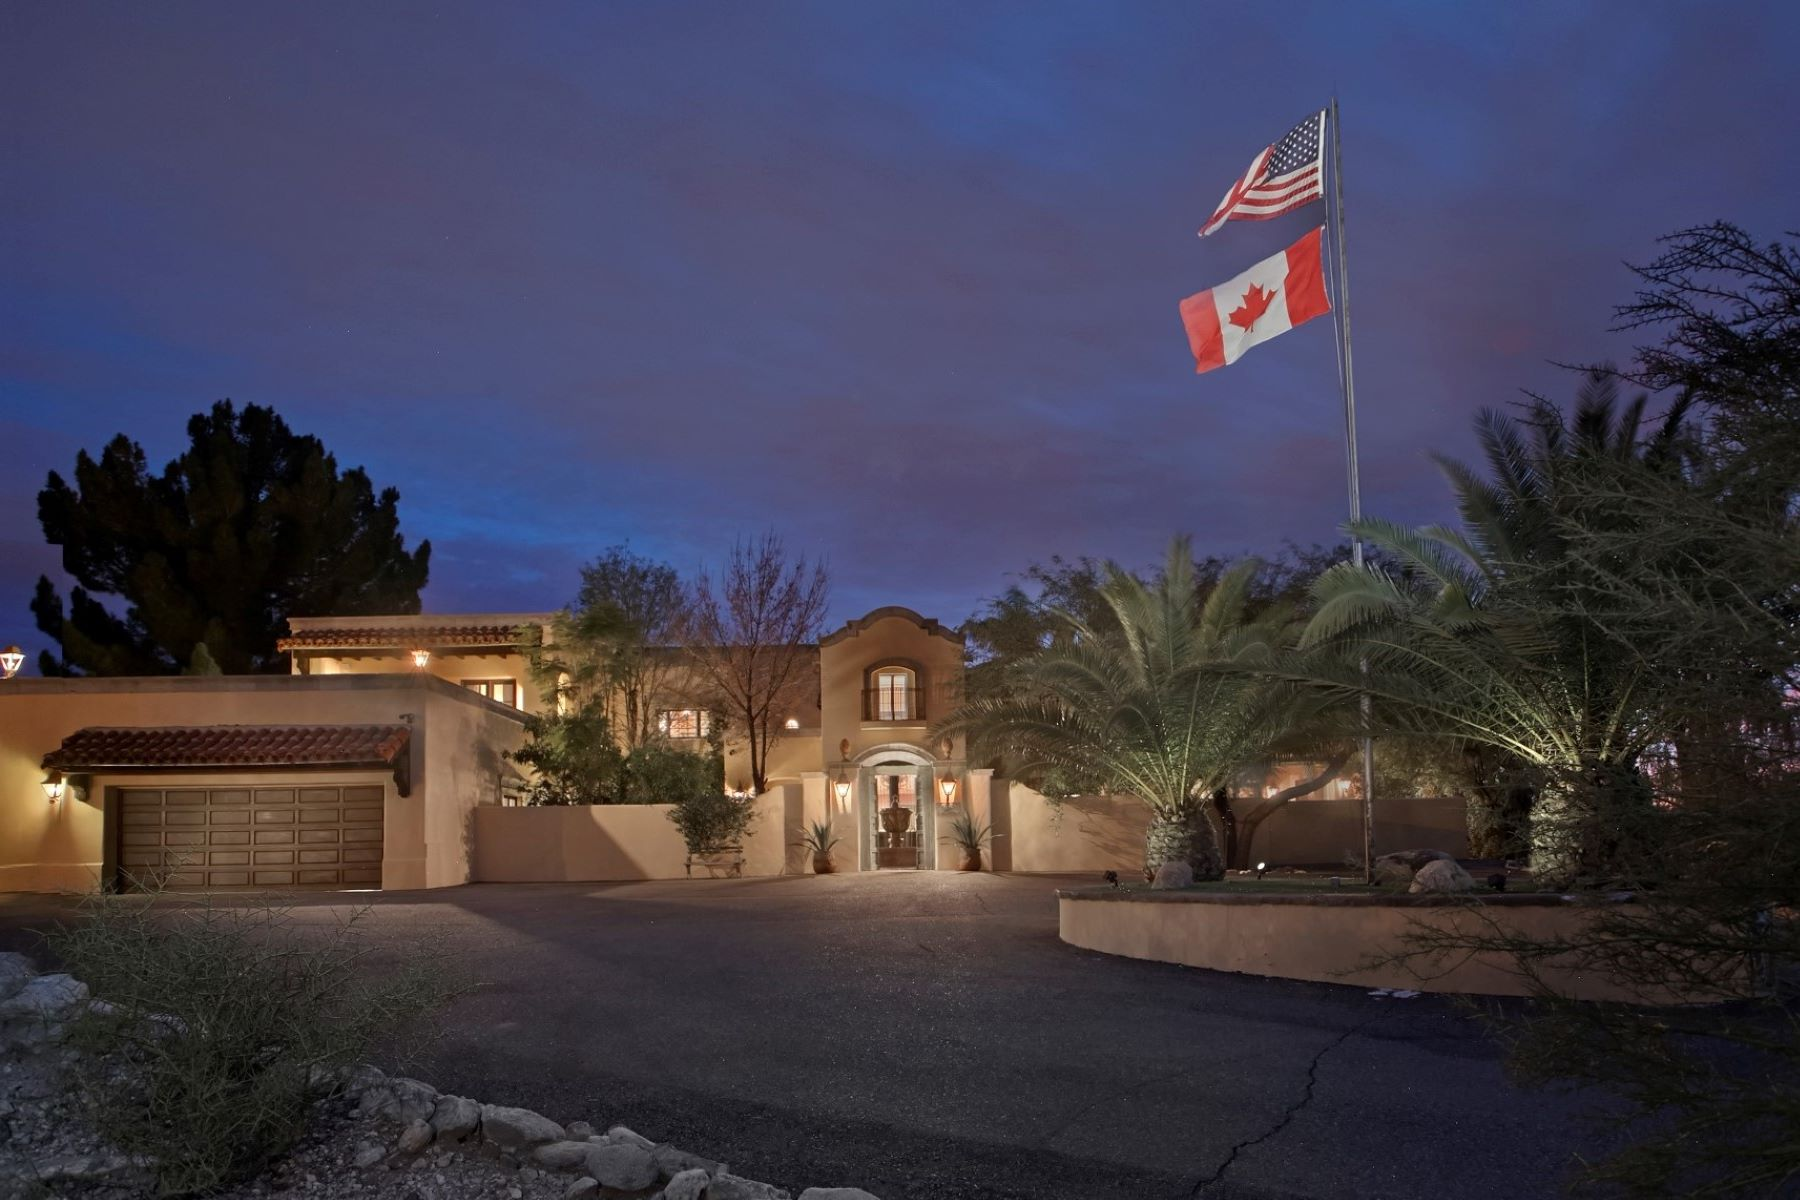 Single Family Homes for Sale at Catalina Foothills Estates 5530 N Camino Escuela Tucson, Arizona 85718 United States